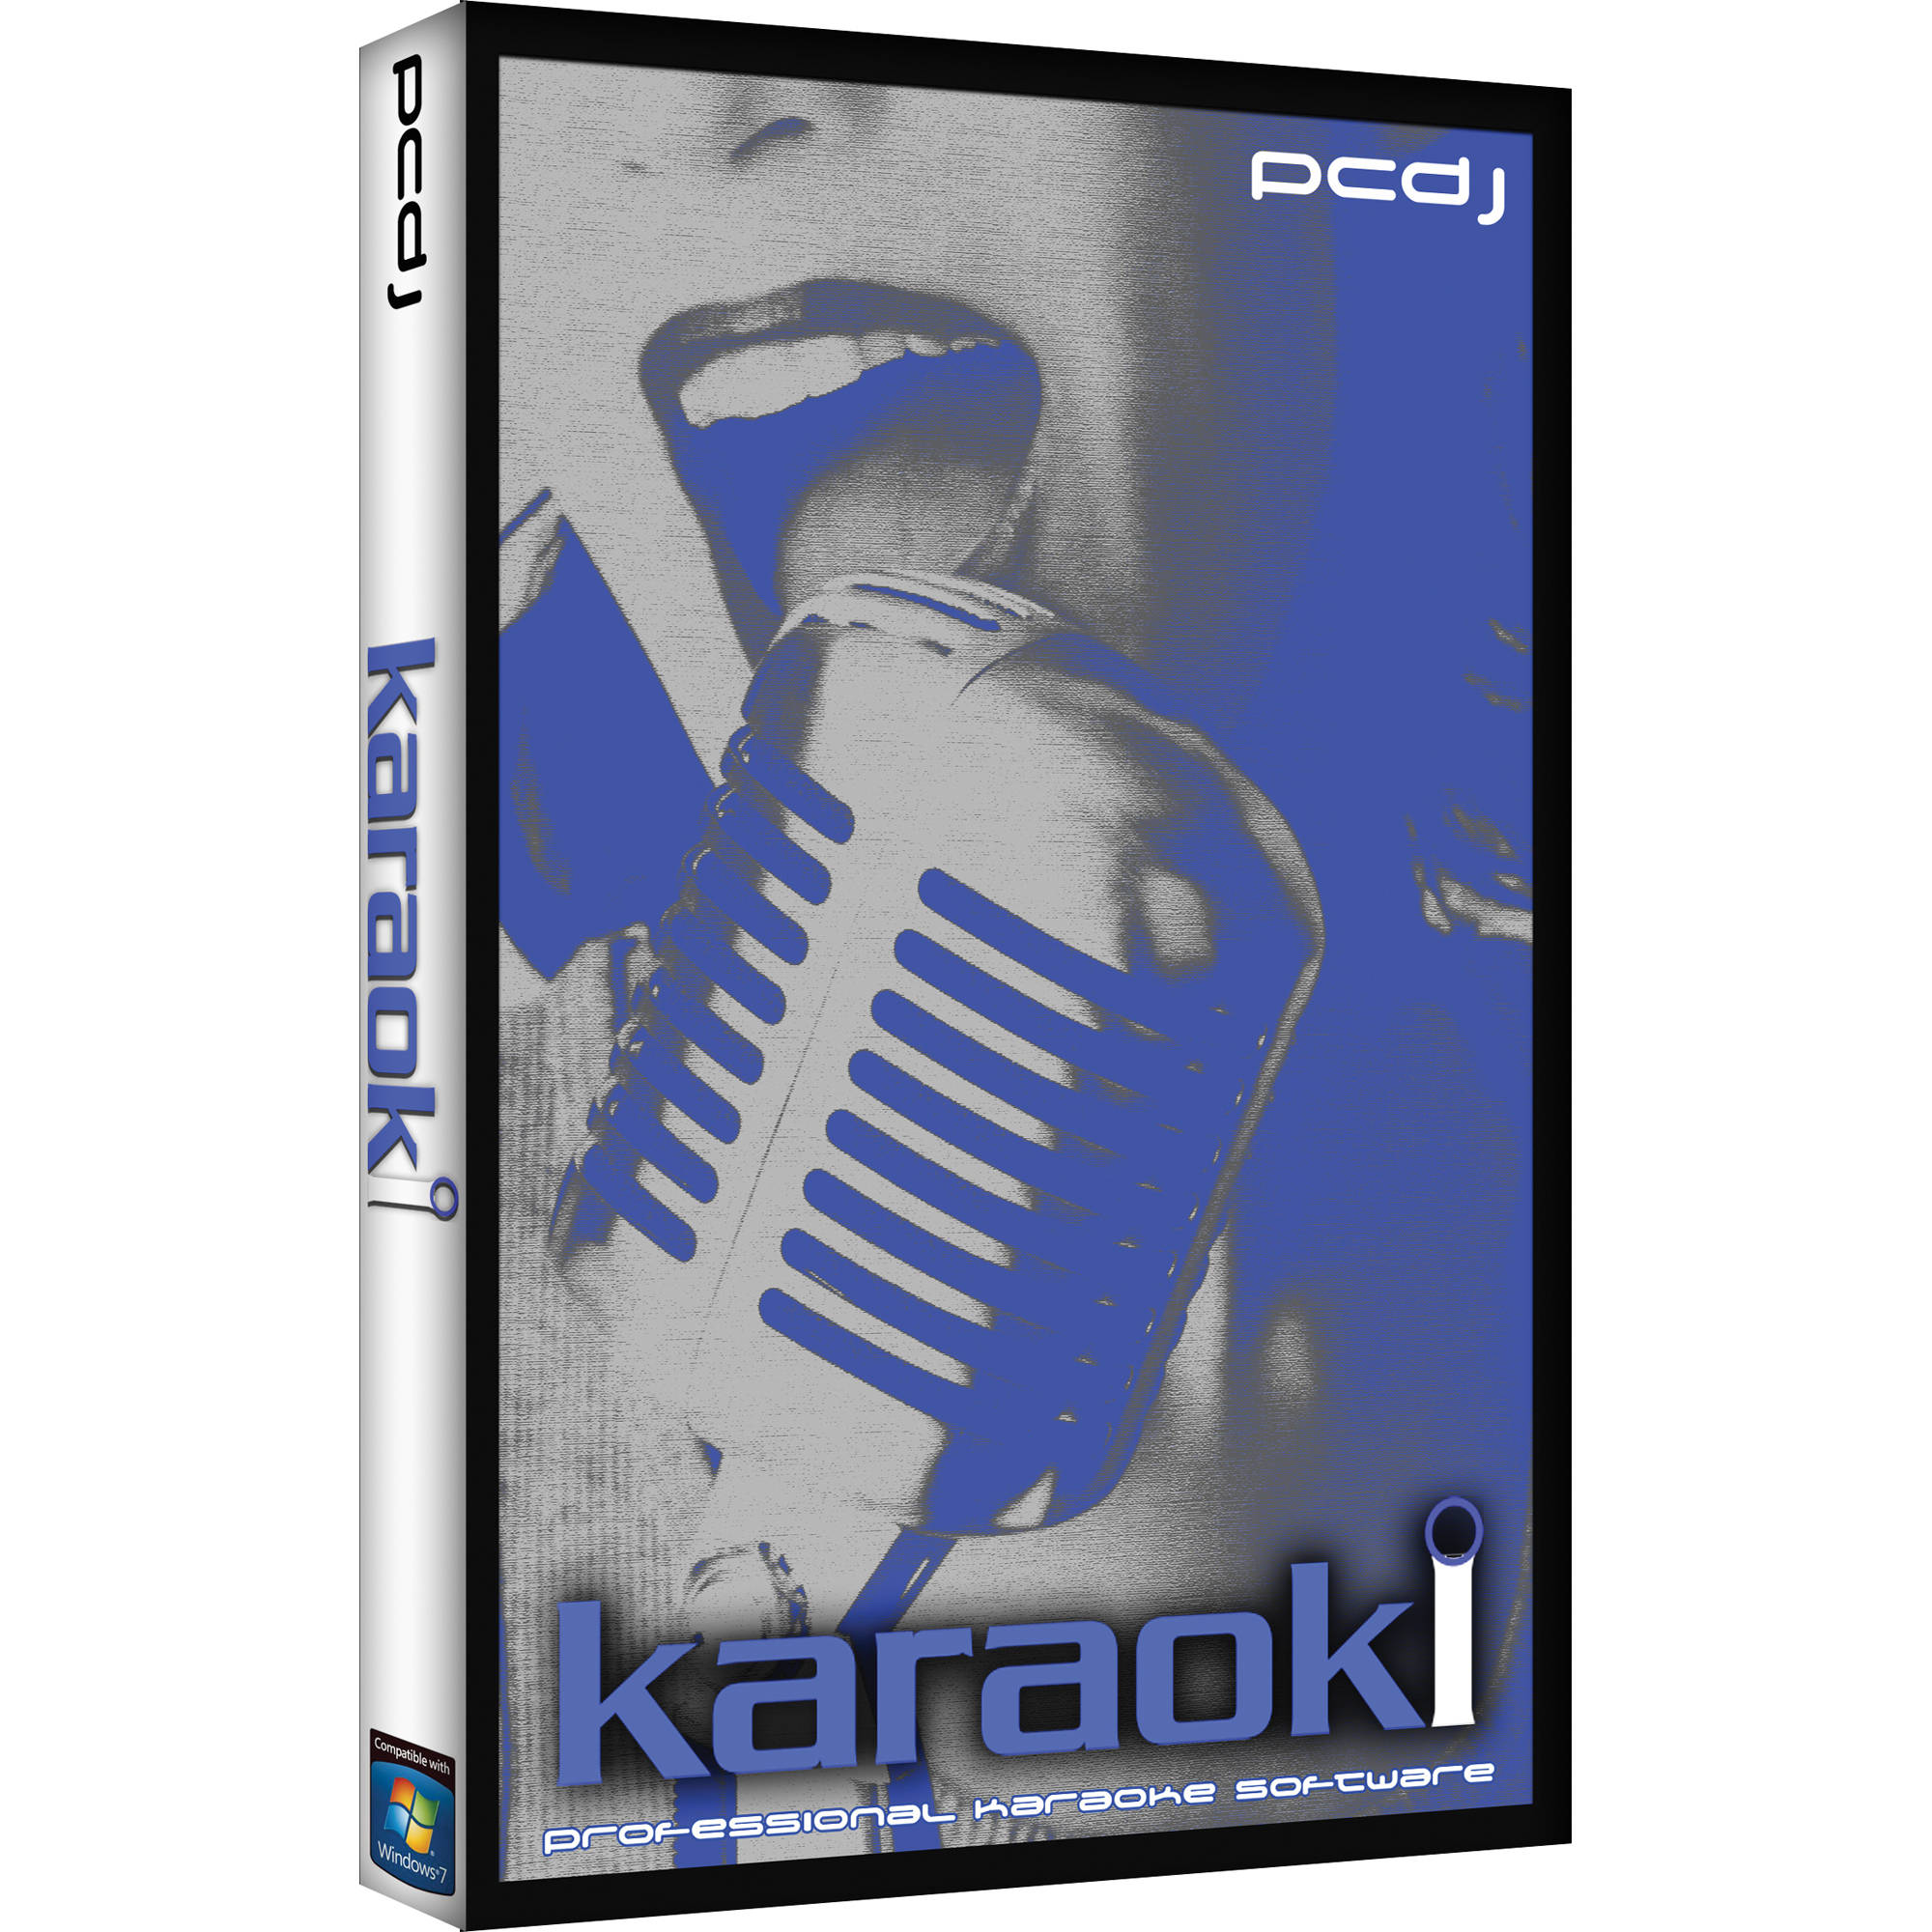 pcdj-karaoki-download-sent-via-e-mail.jpg